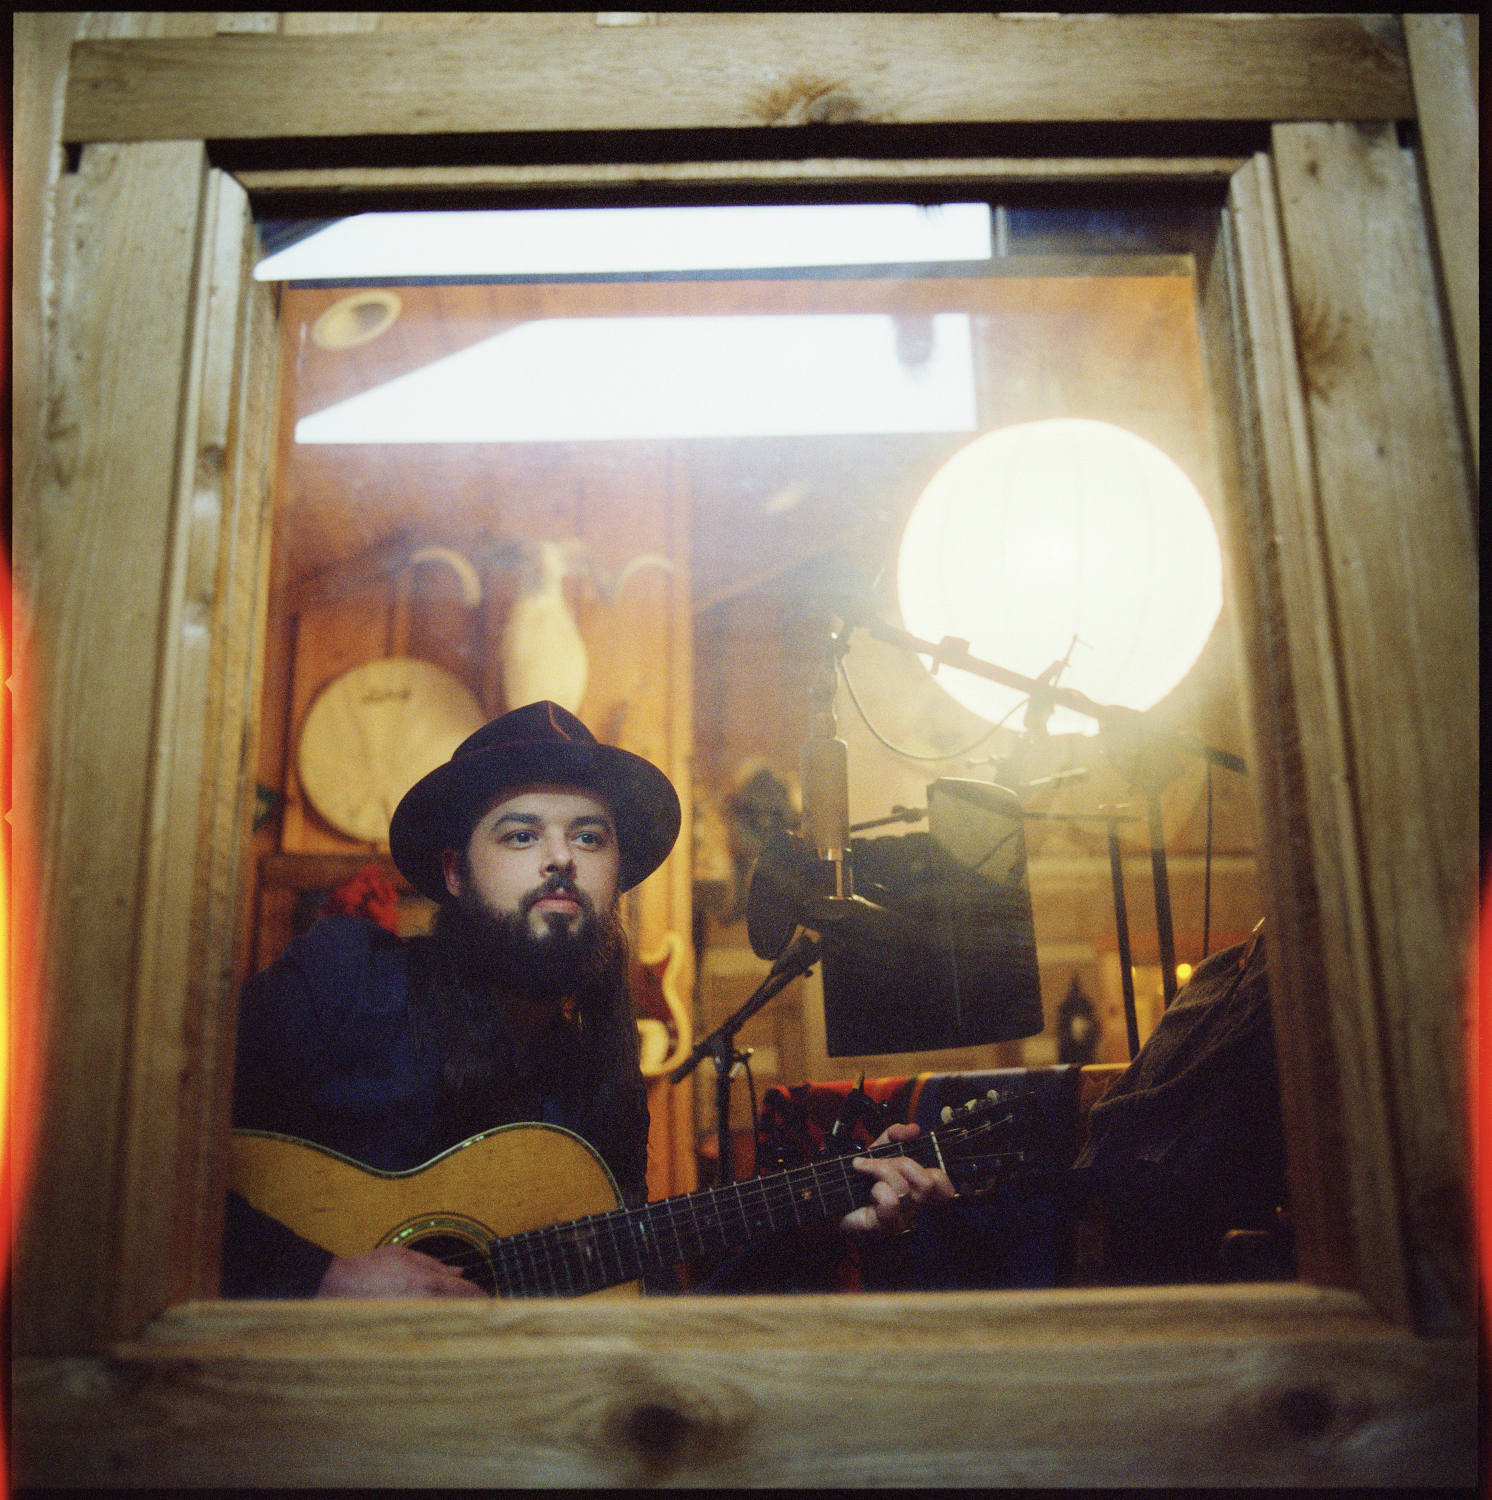 CALEB CAUDLE RECORDING AT CASH CABIN